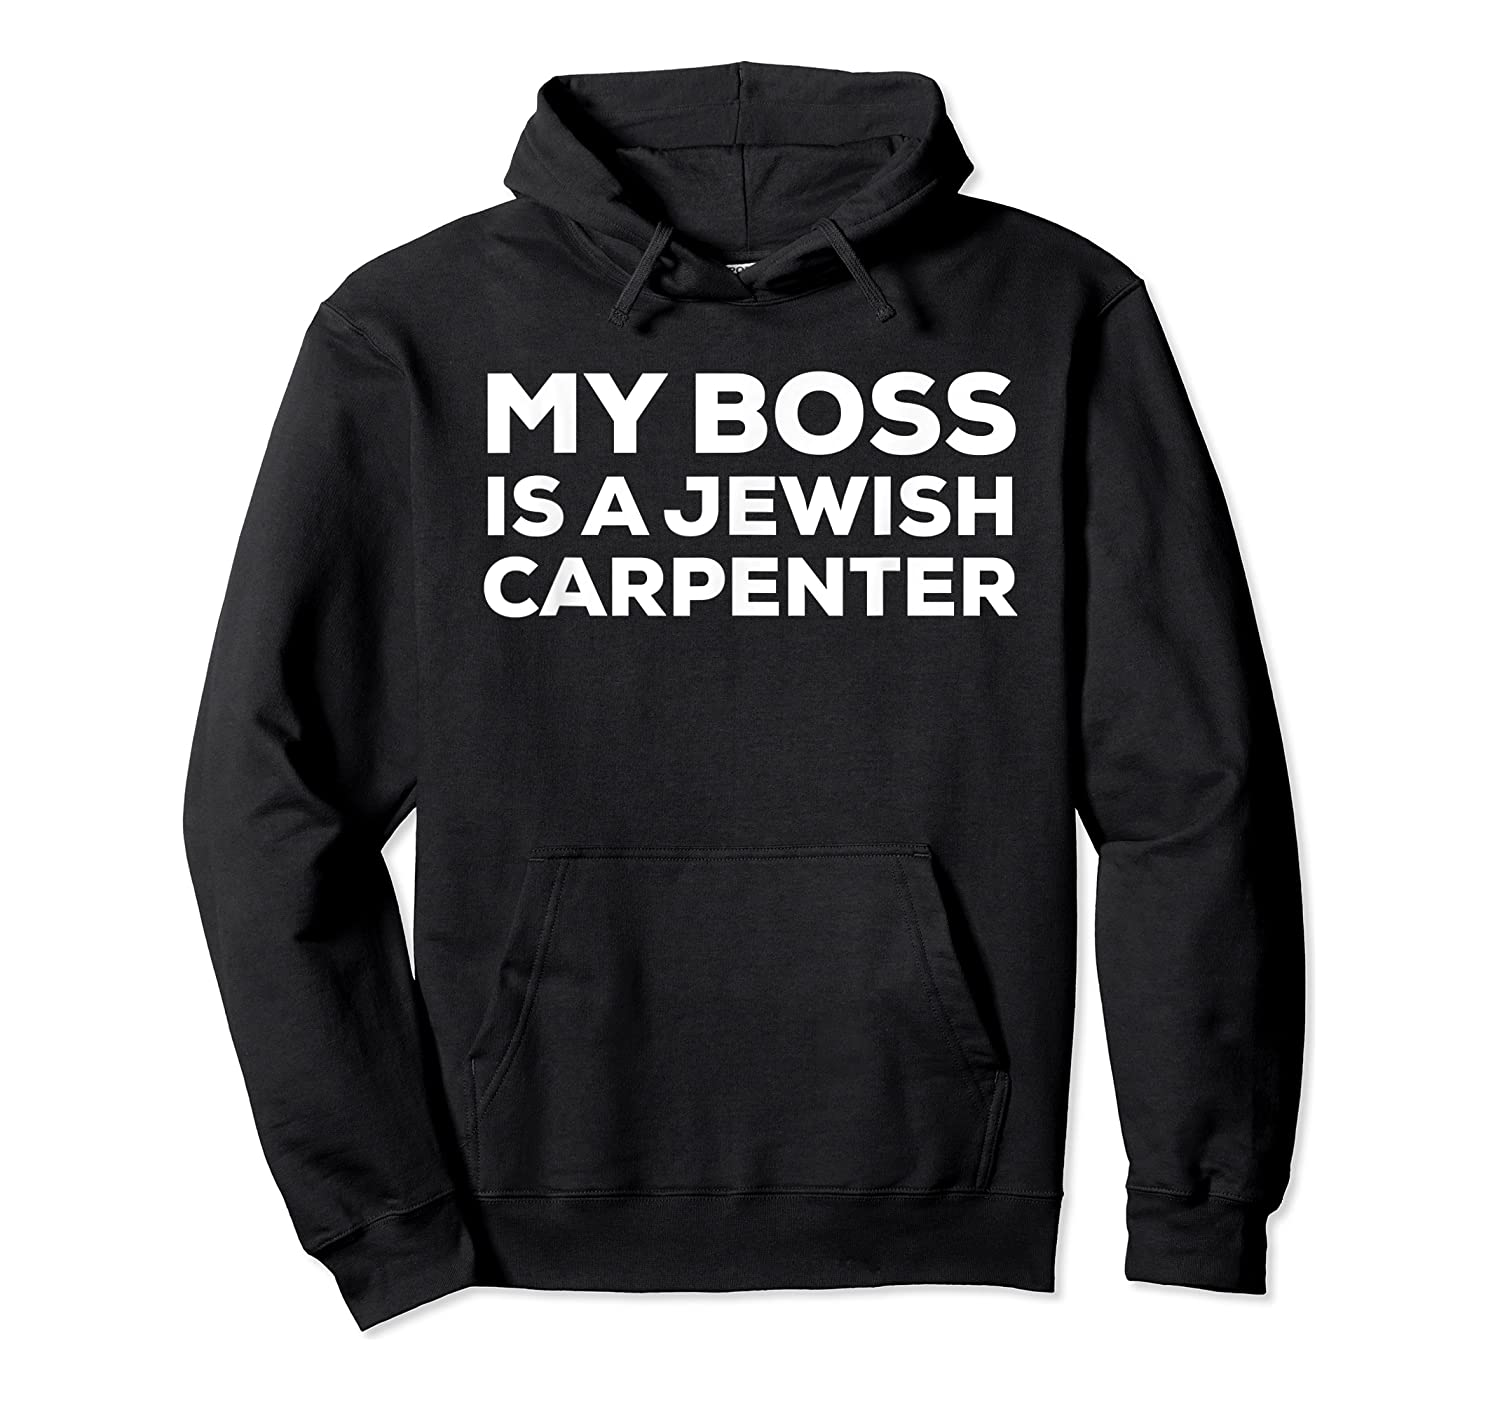 My Boss Is A Jewish Carpenter Funny Shirts Unisex Pullover Hoodie